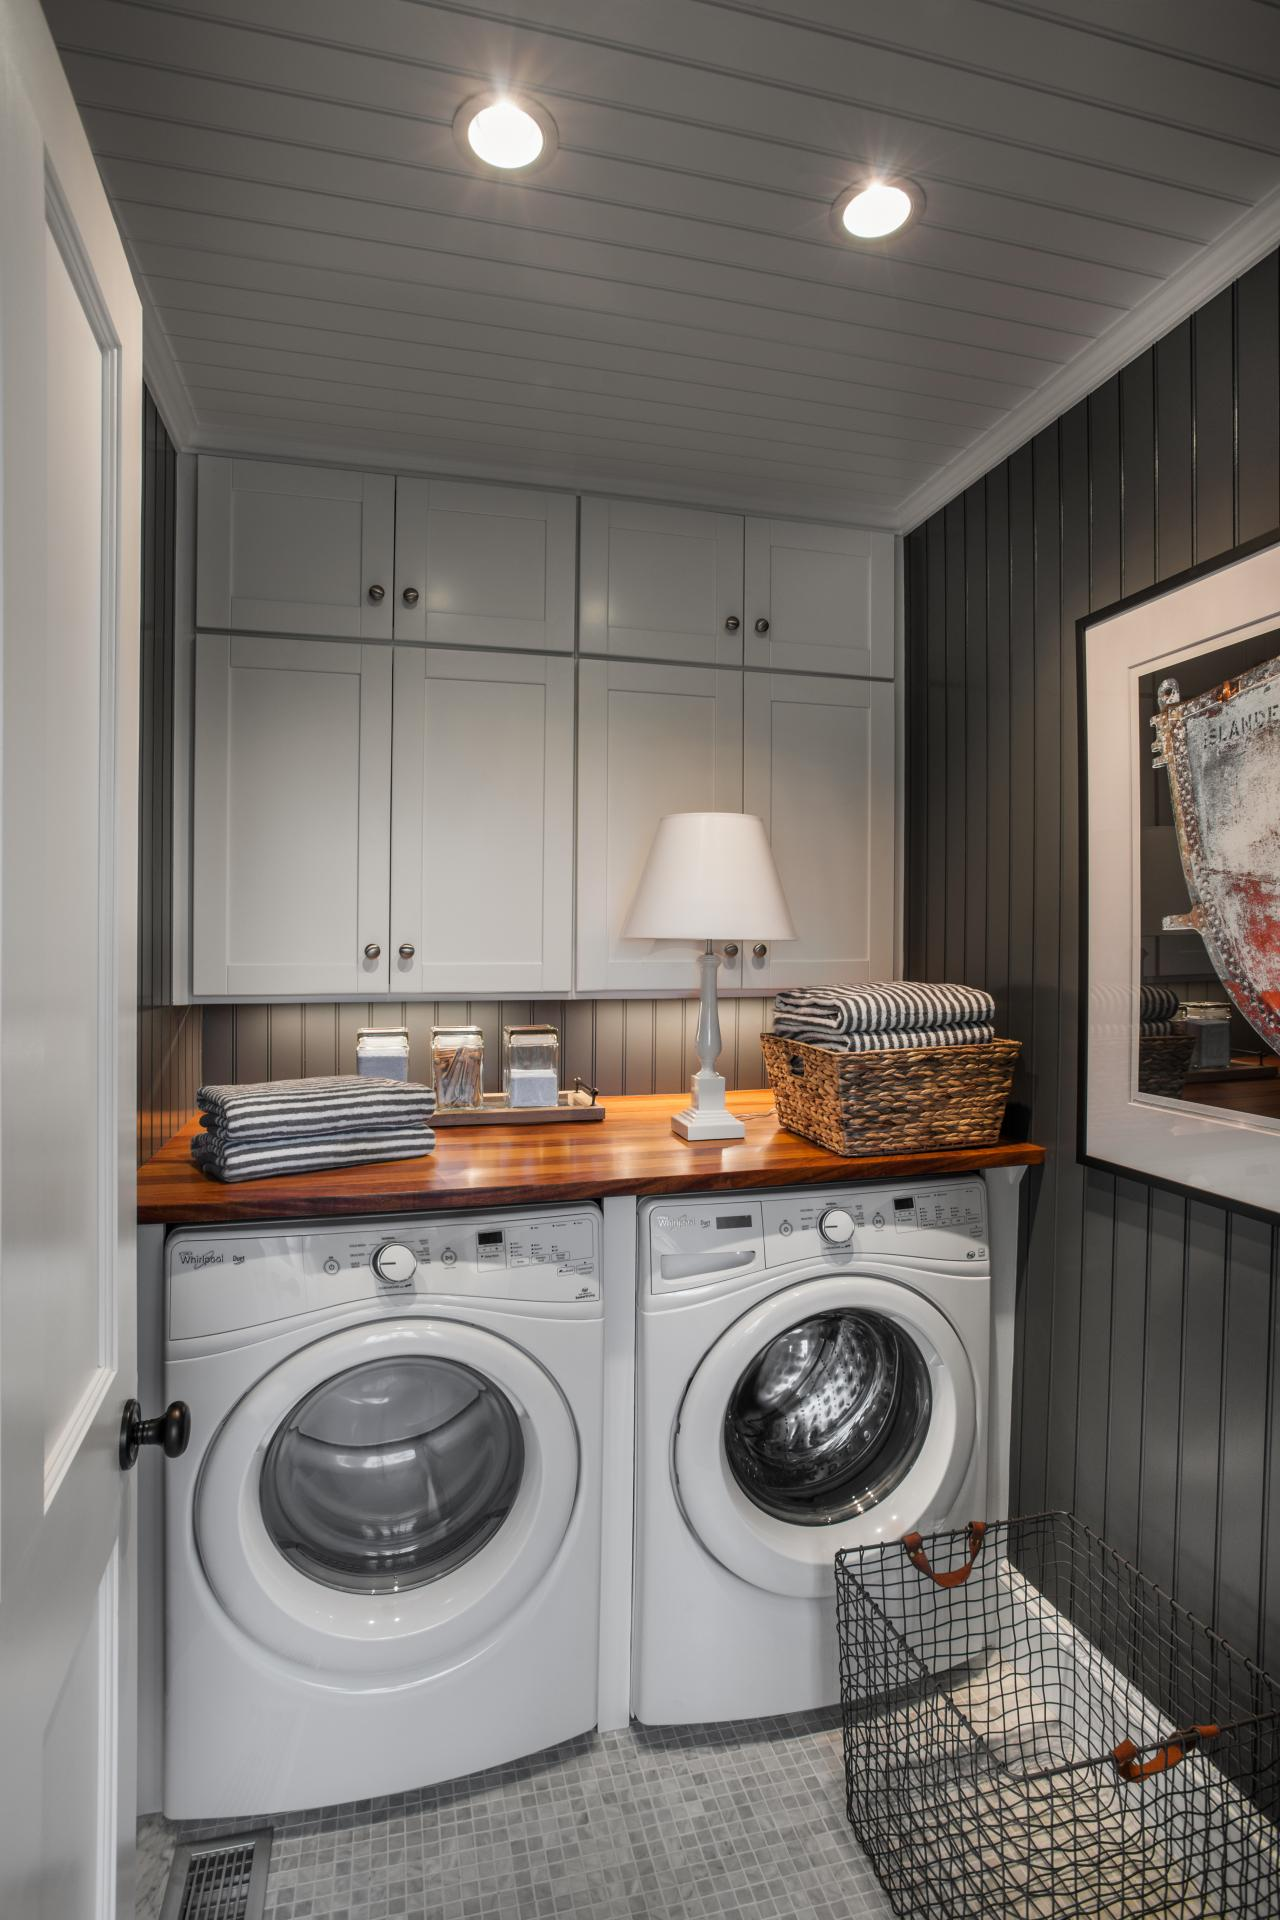 Photos hgtv - Laundry room designs small spaces set ...